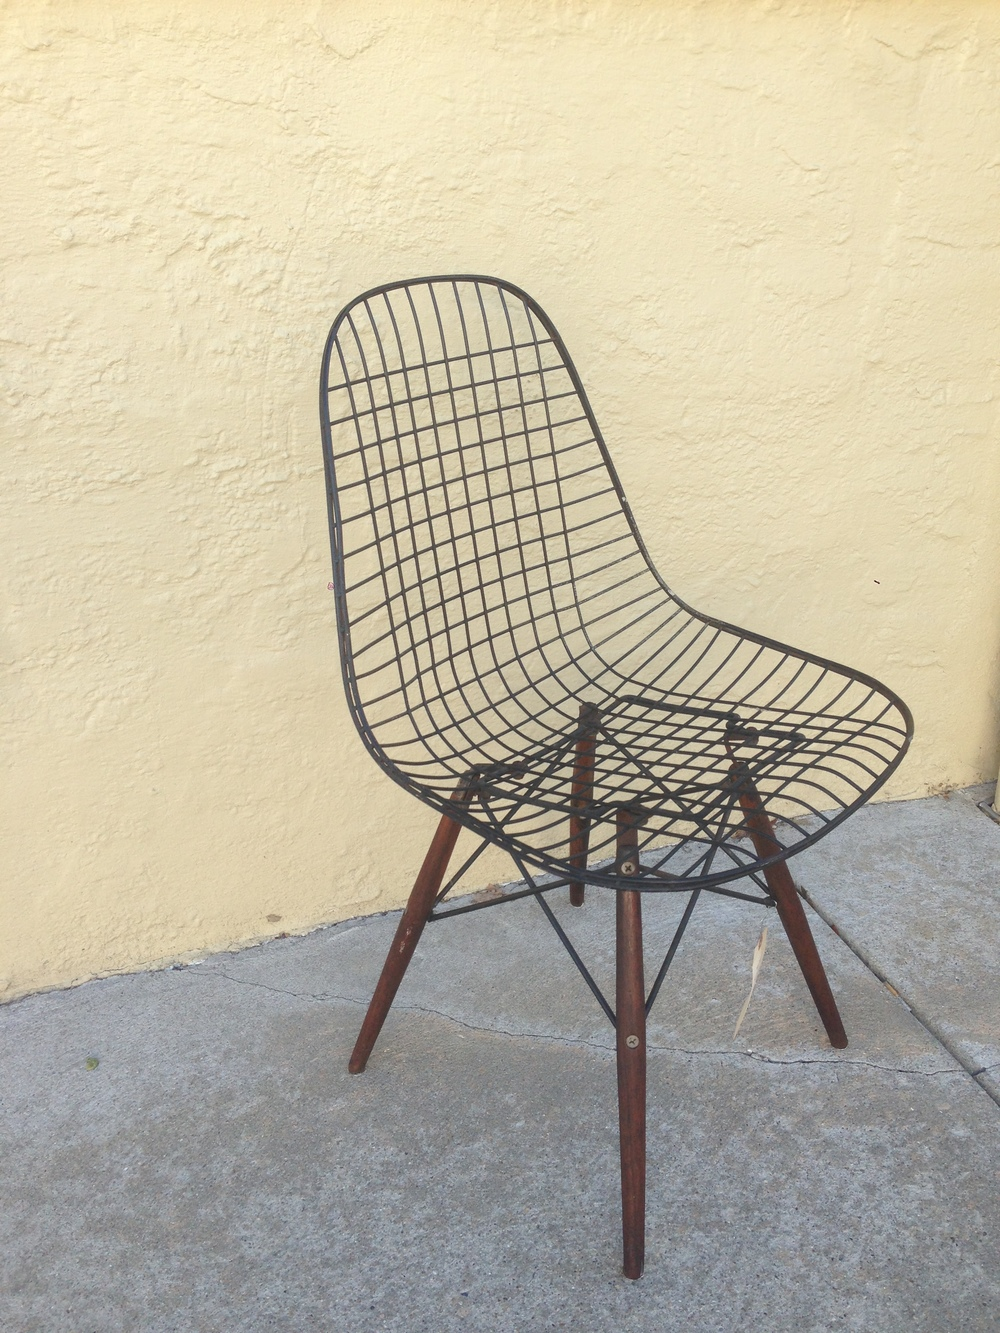 Eames DKW-1 chair manufactured by  Herman Miller, 1952-1954. Due to their delicate wooden leg joints, it is rare to find these chairs in tact. We currently have two of these in stock!